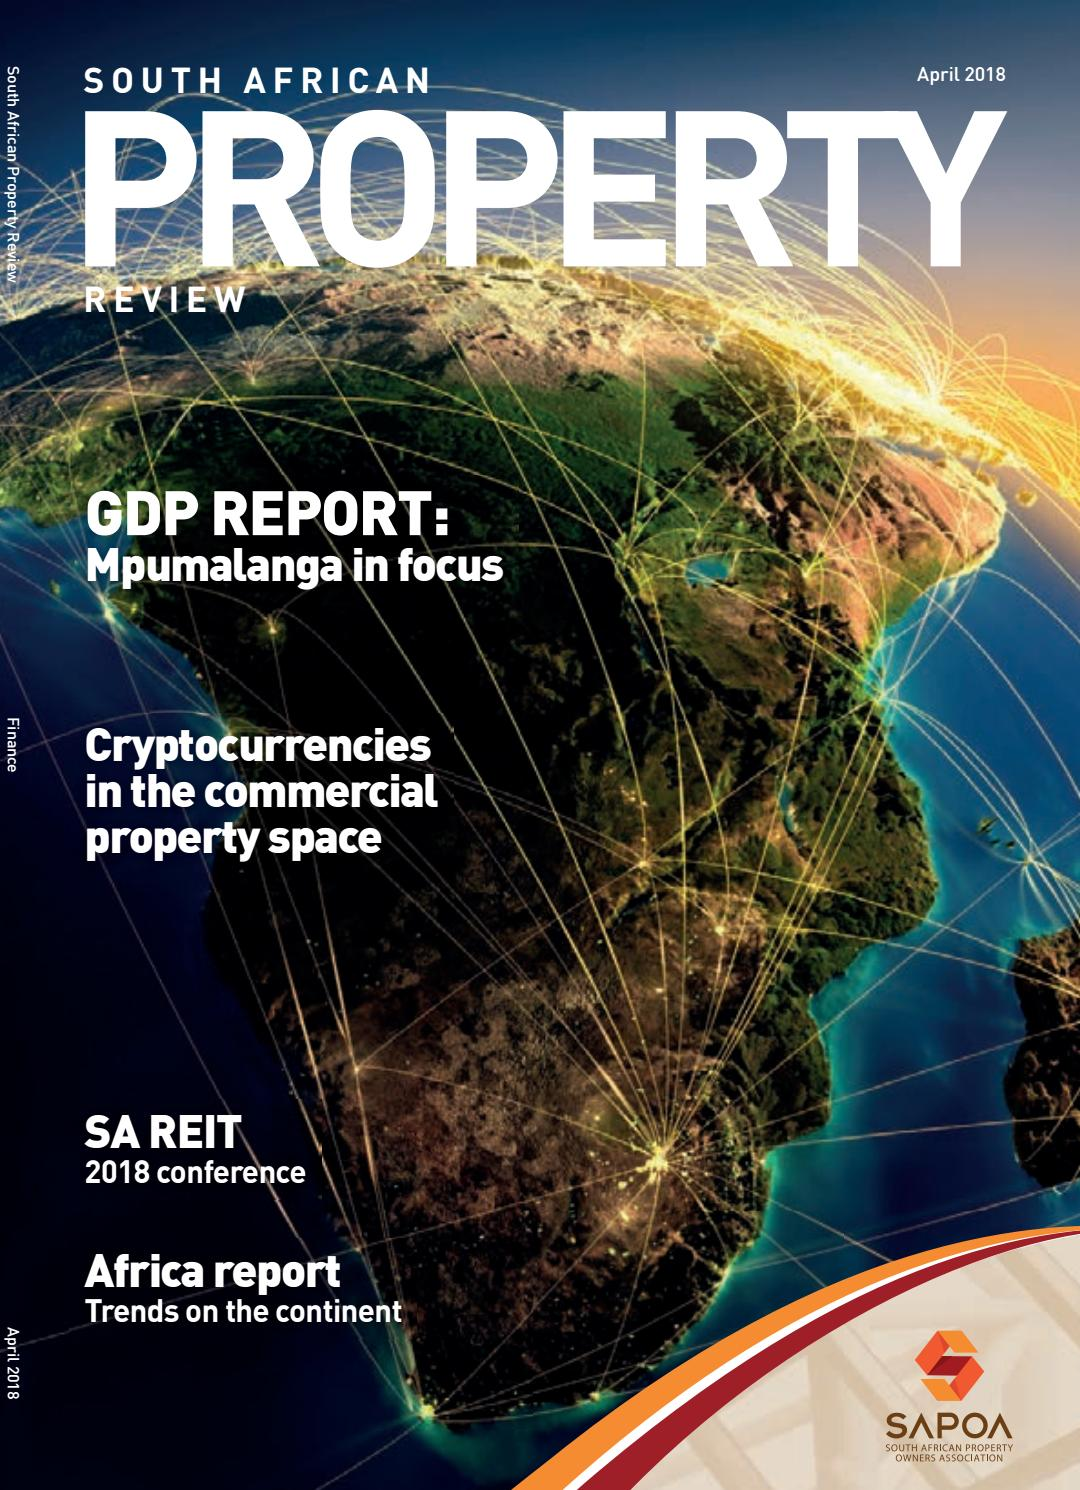 South African Property Review April 2018 by SAPOA - issuu